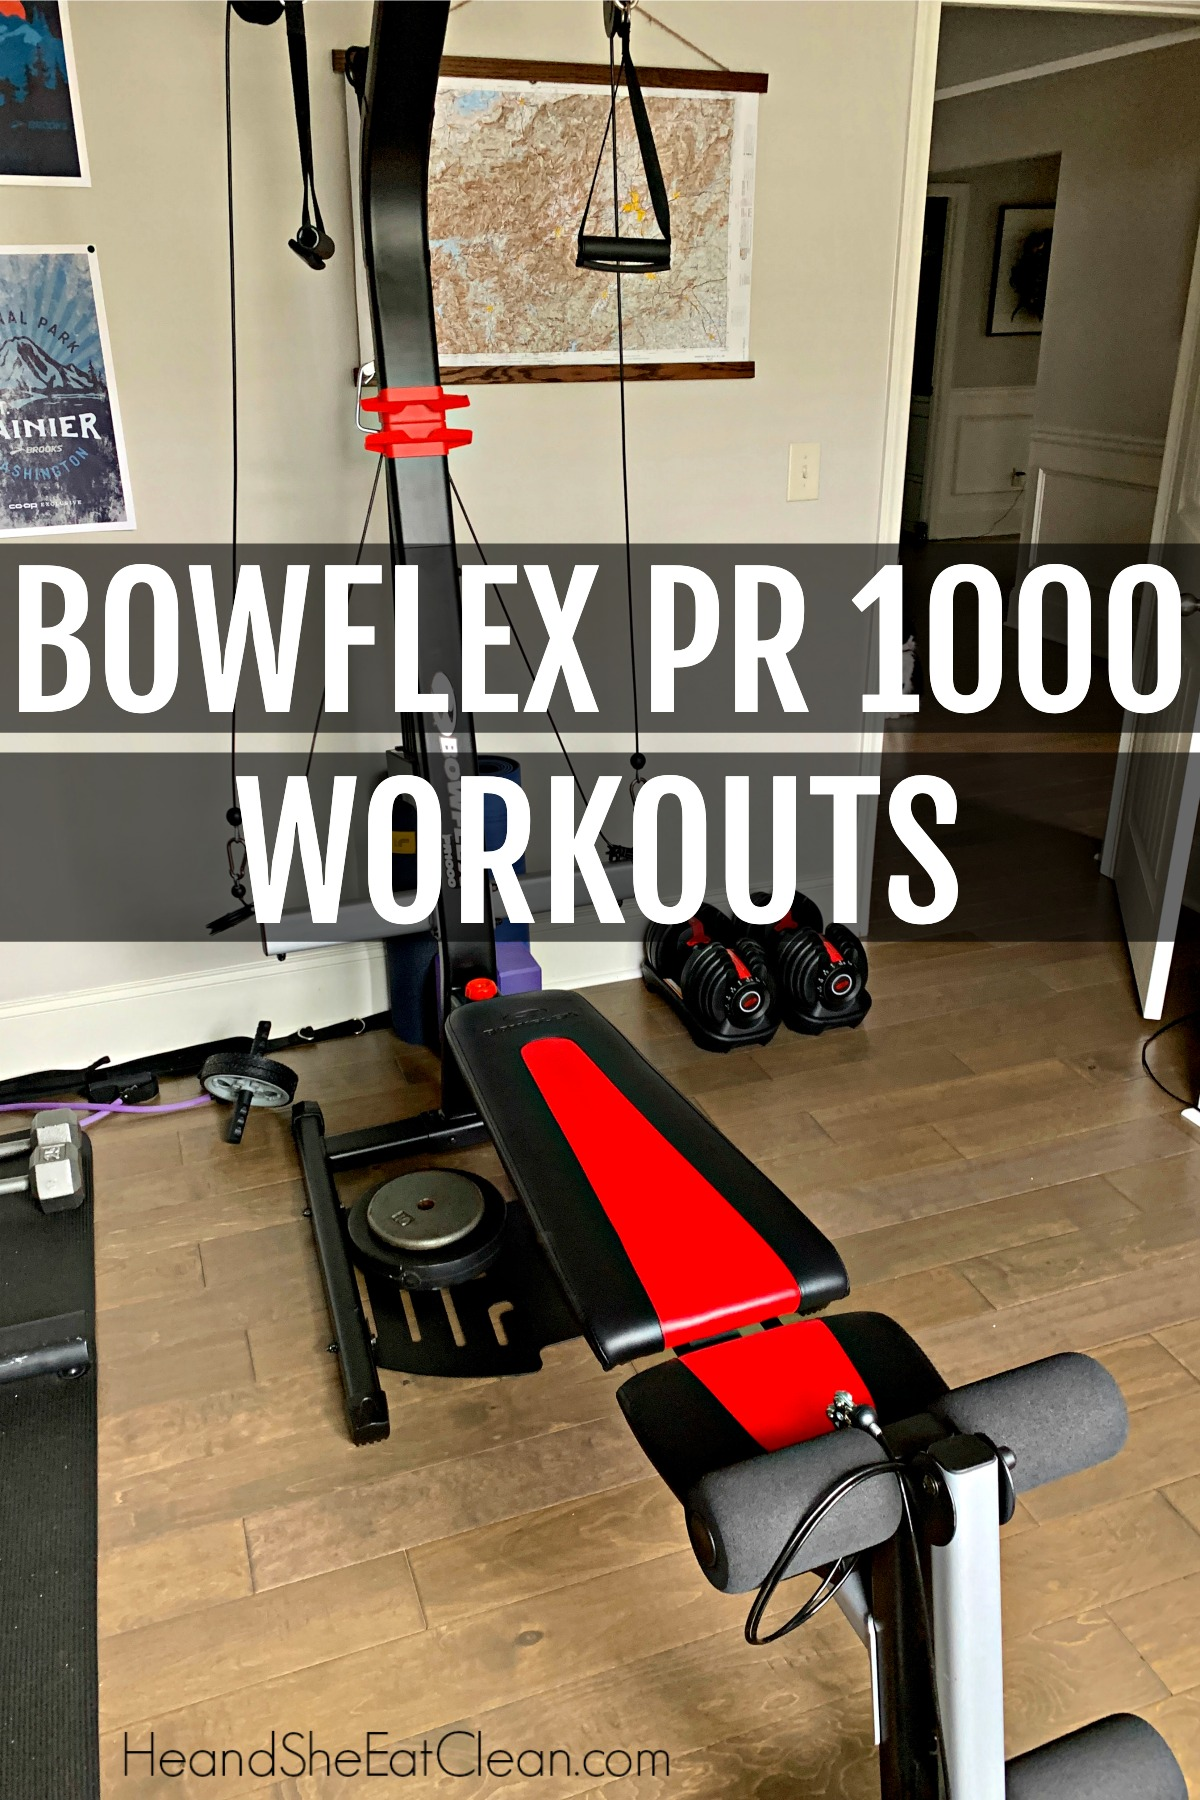 Bowflex Pr1000 Exercises Pdf : bowflex, pr1000, exercises, Bowflex, PR1000, Workouts, (with, Video!)